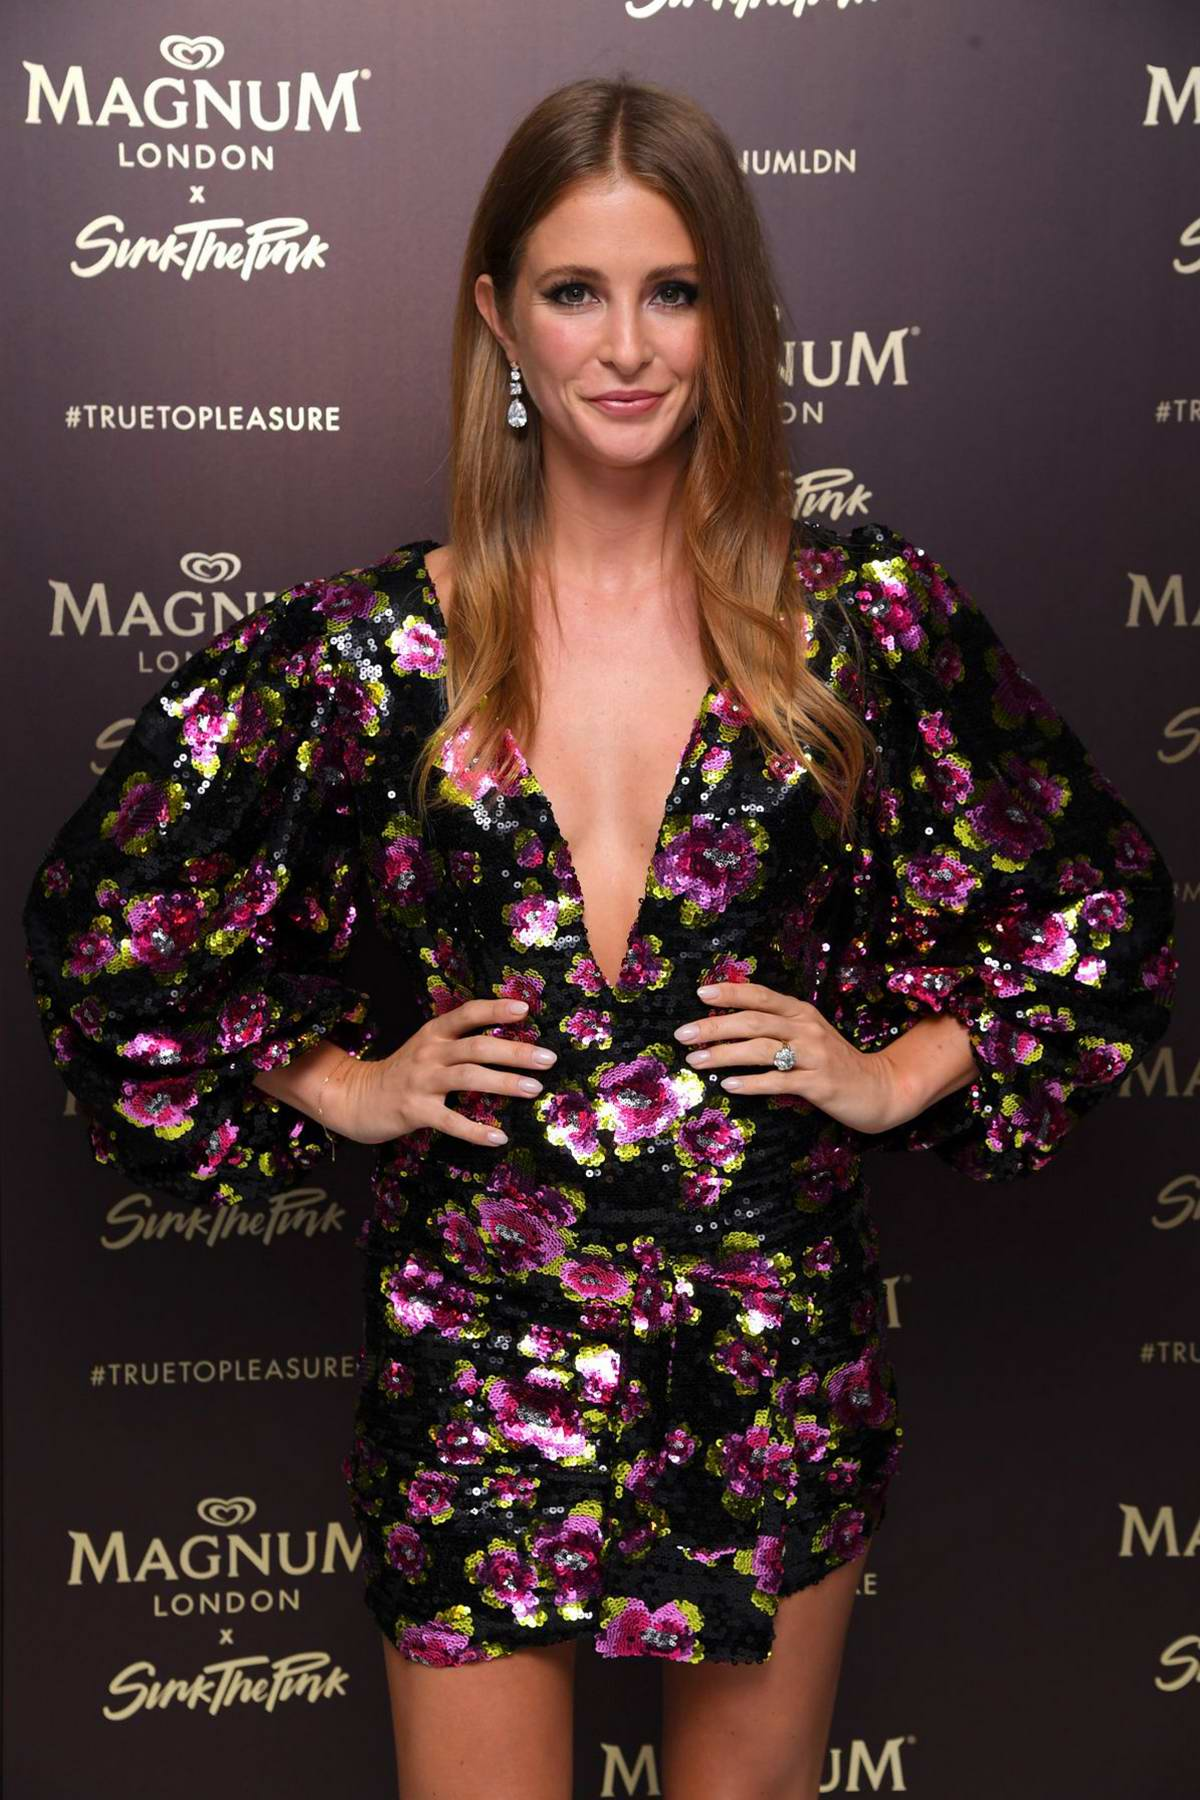 Millie Mackintosh attends the Magnum Pleasure Store launch party in London, UK